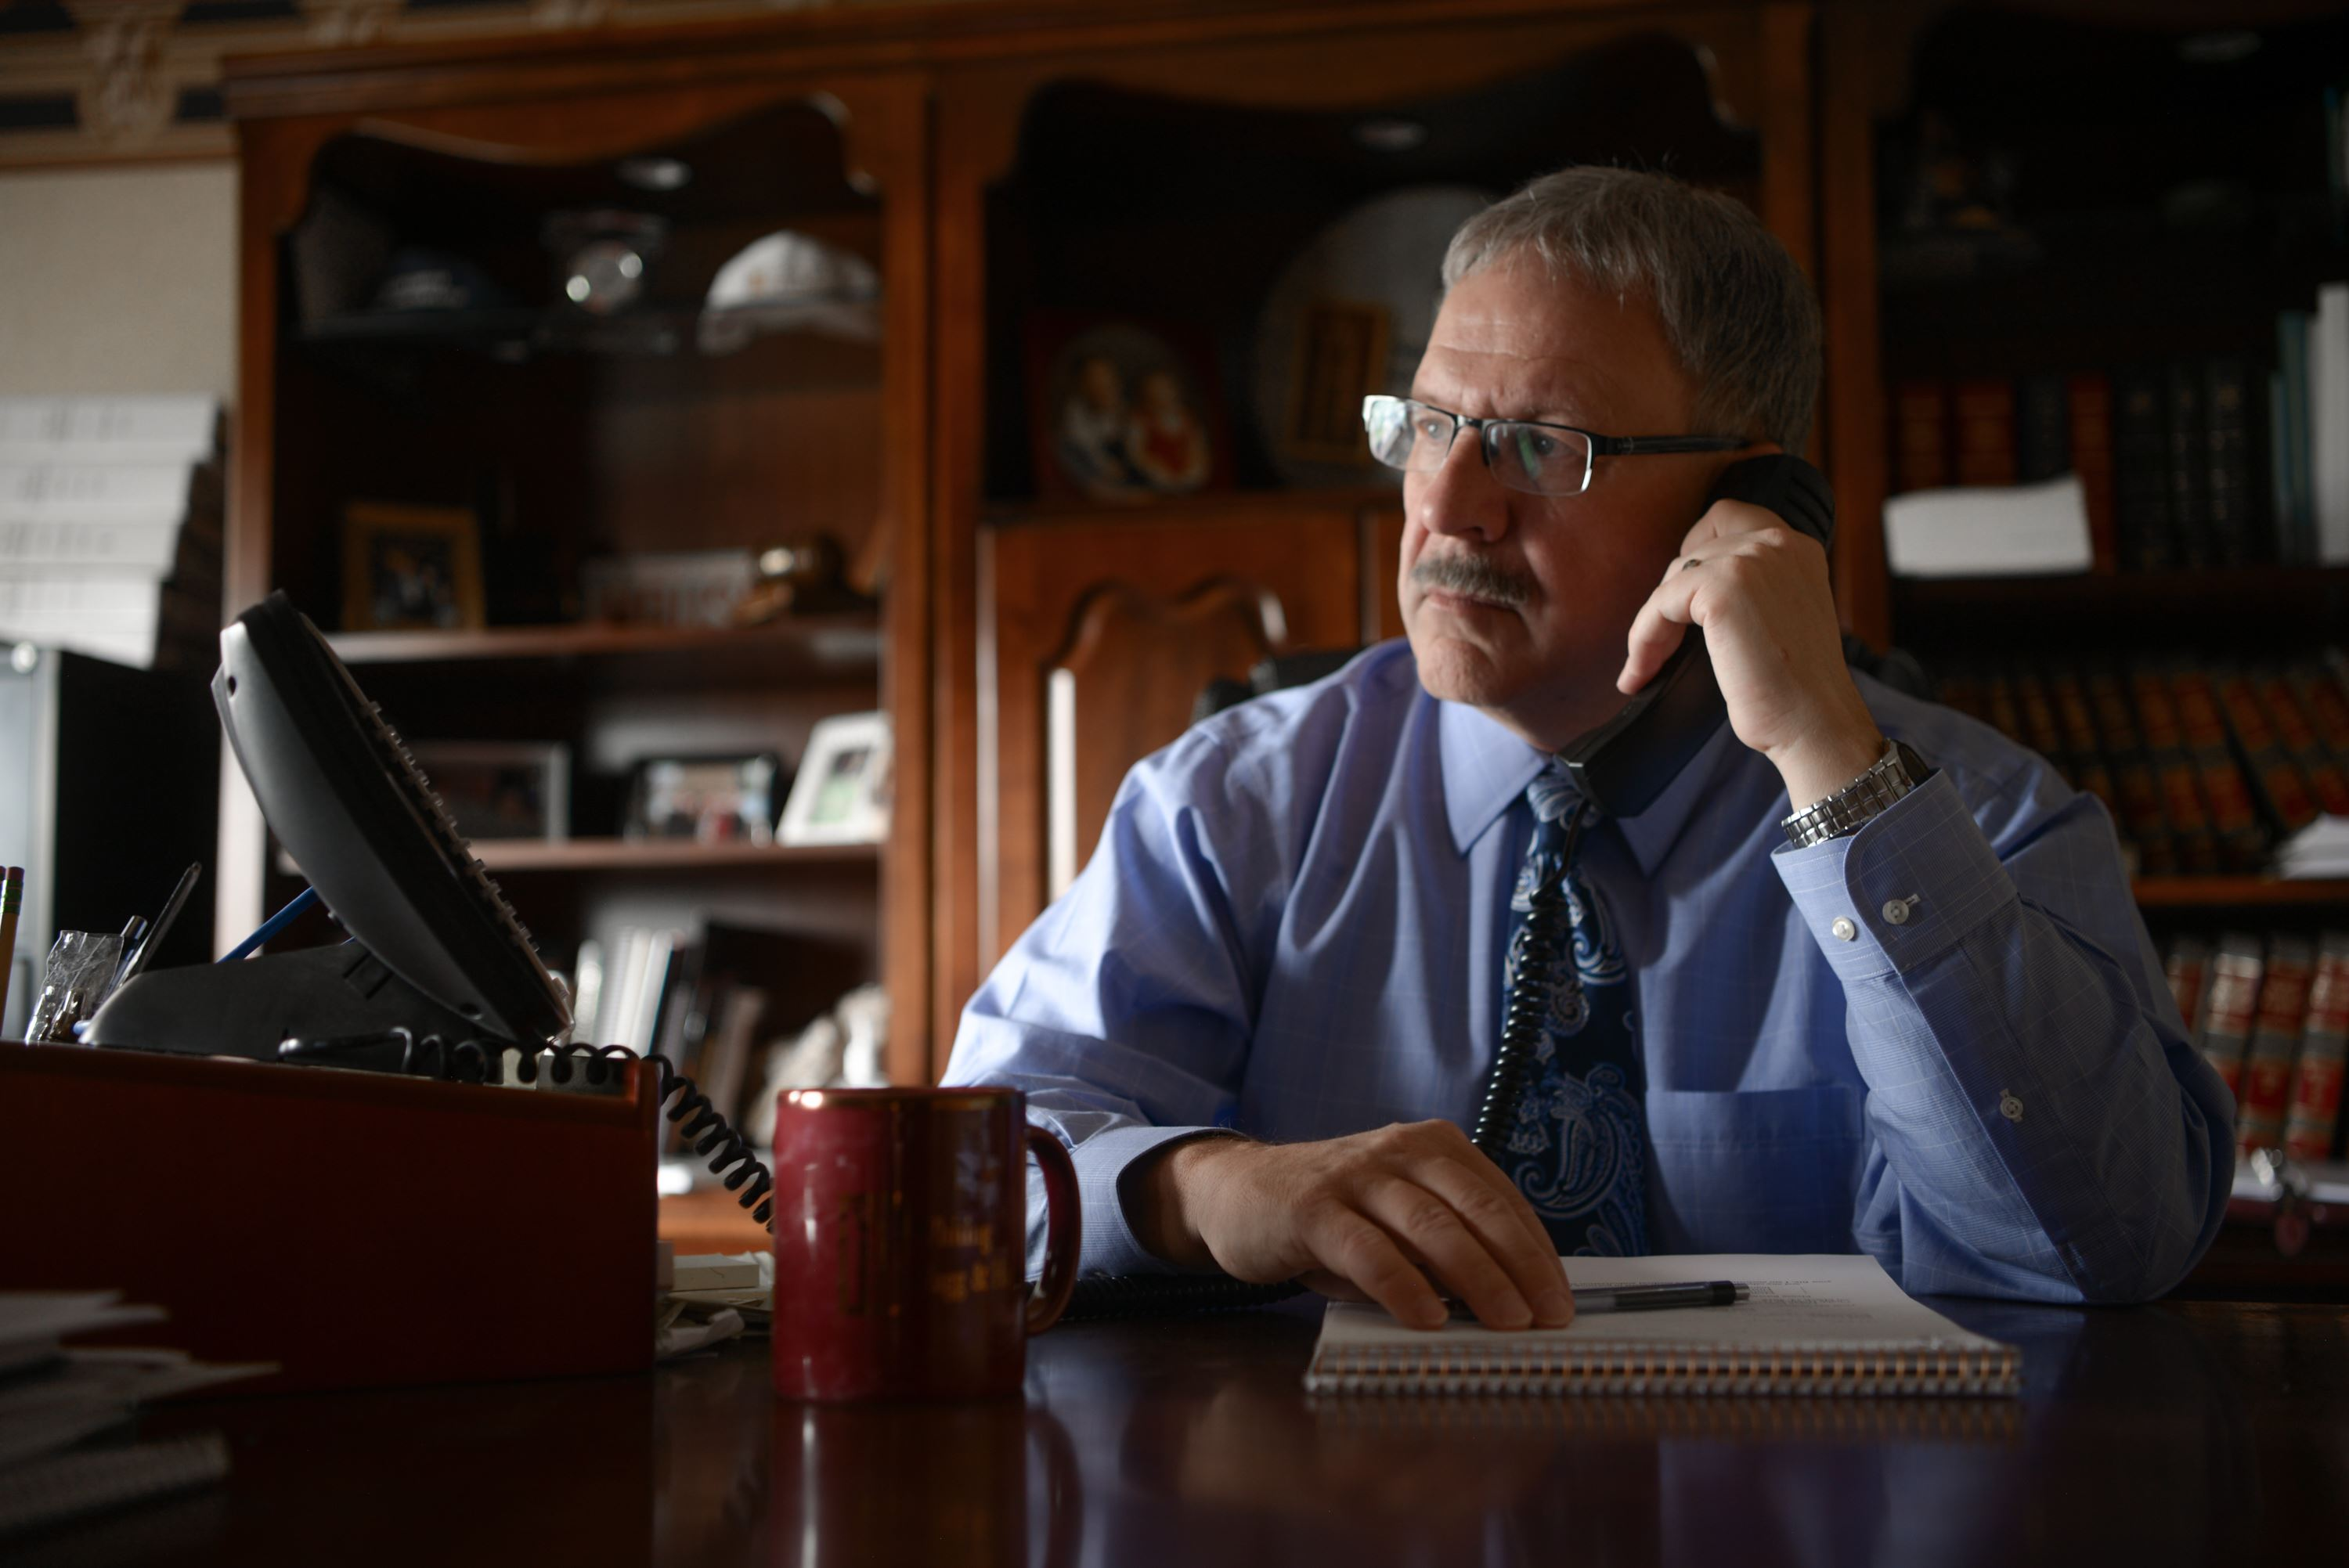 Attorney Rexford Hagg on the phone with a client